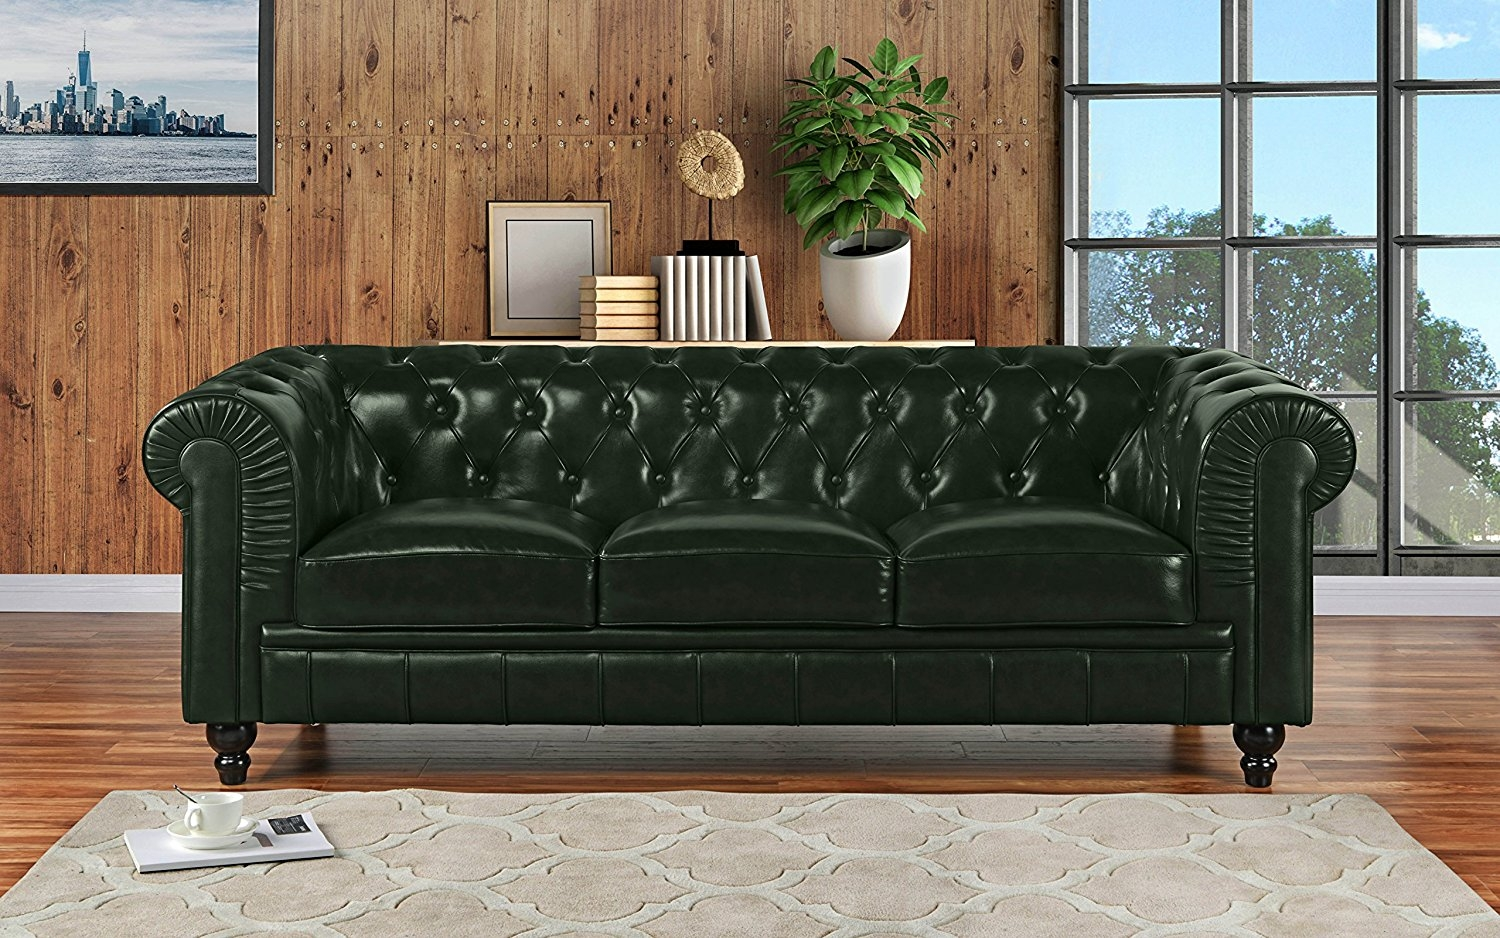 Classic Scroll Arm Real Leather Chesterfield Sofa (Green)   Walmart.com